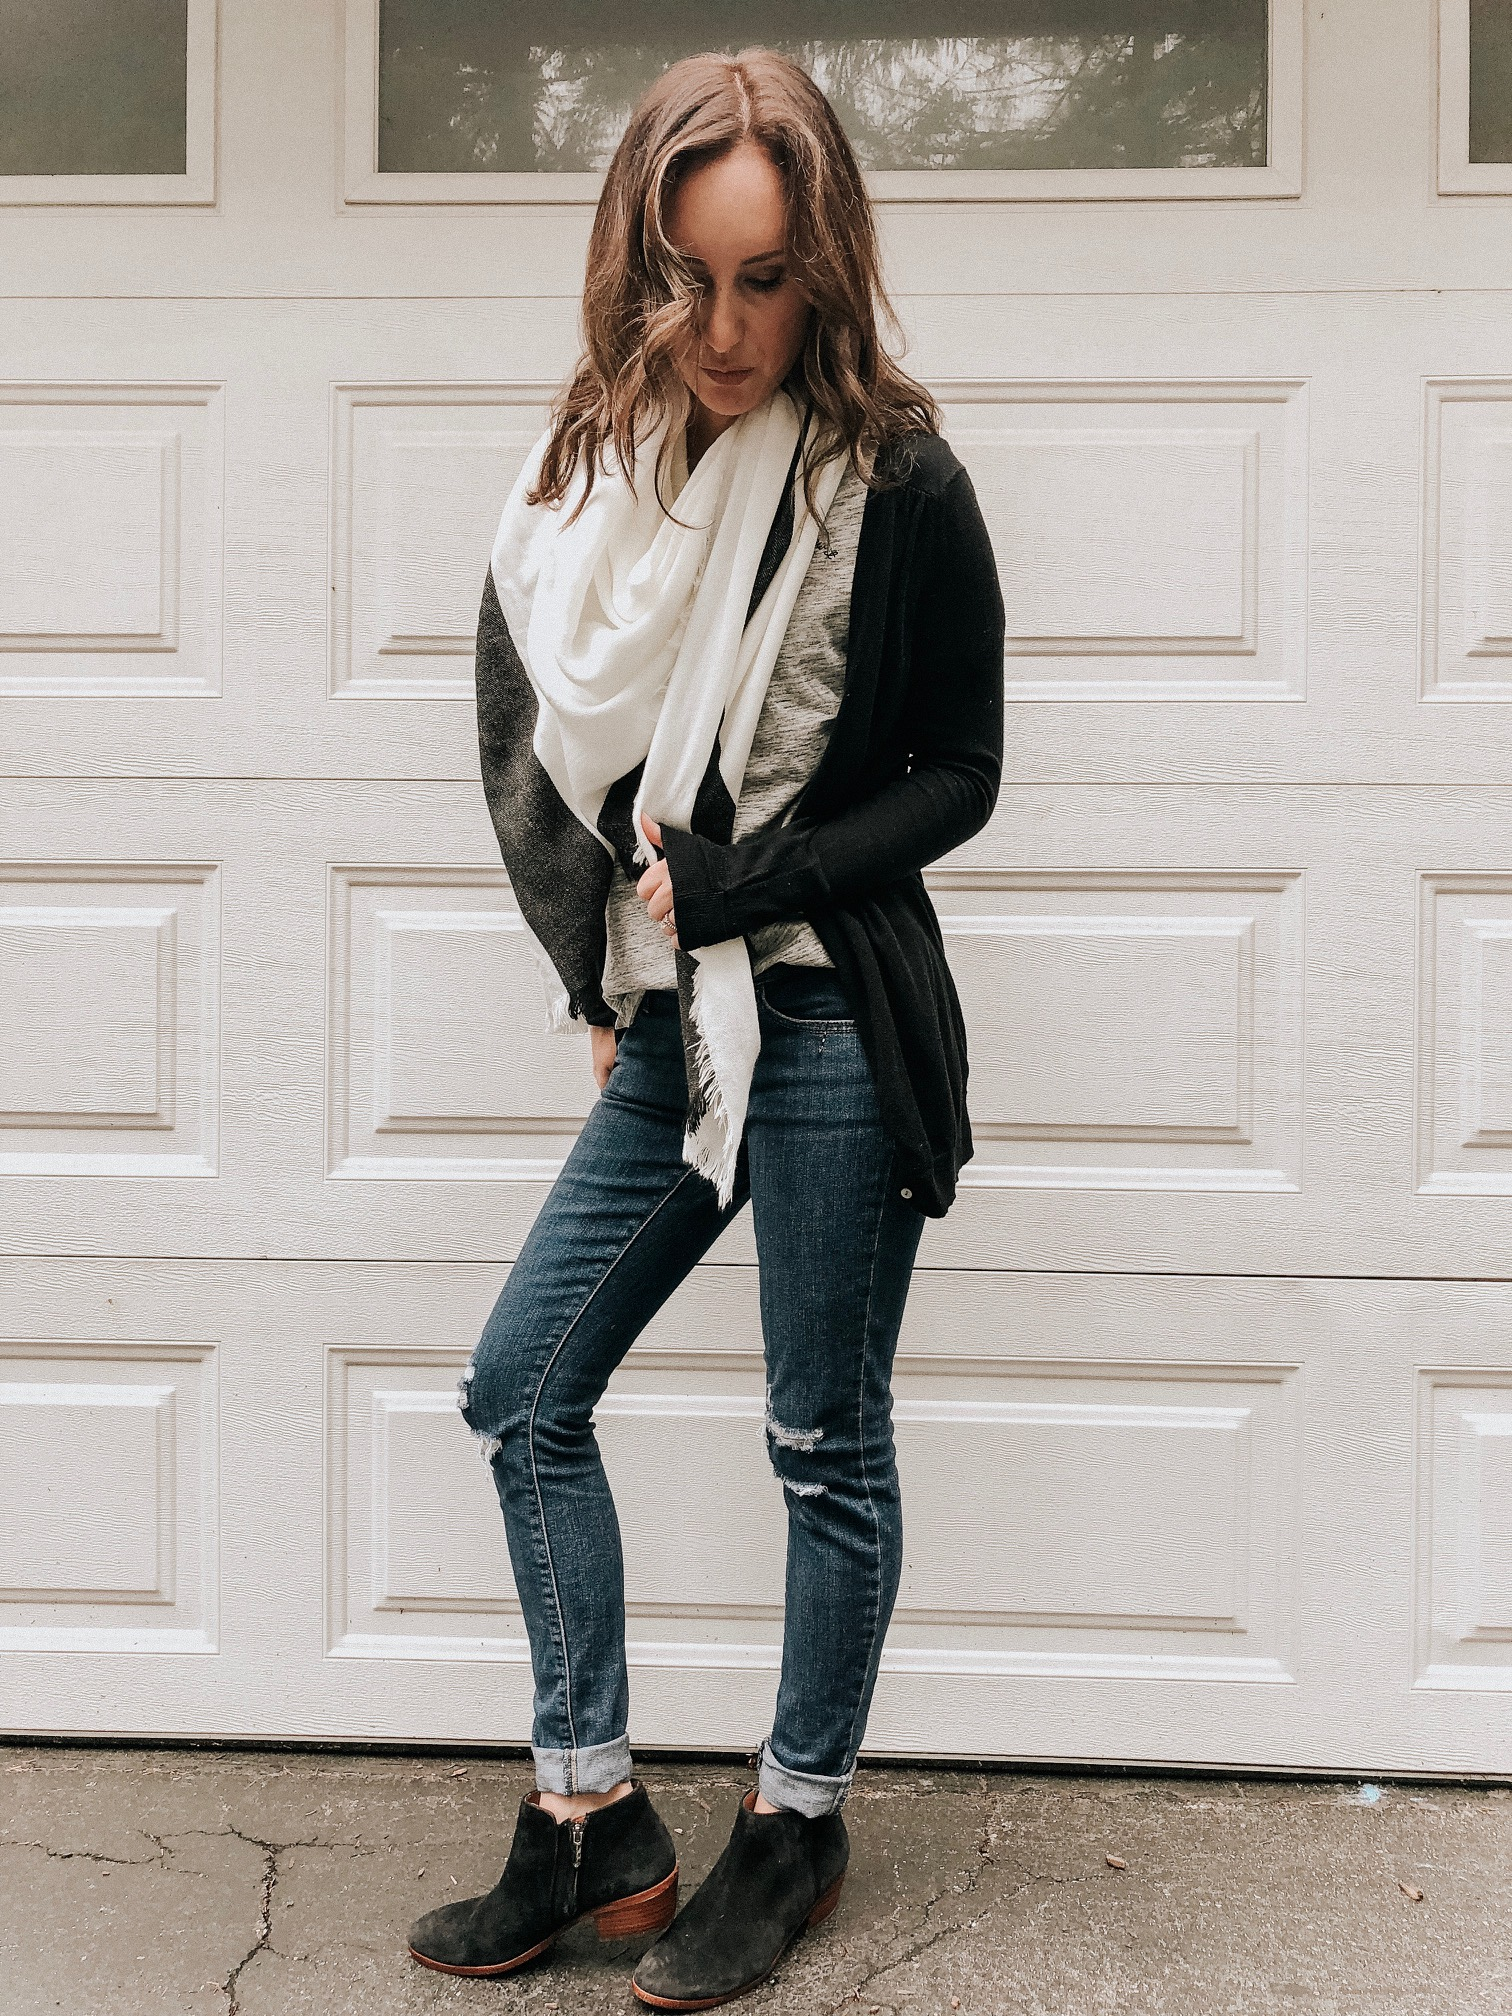 Must have items to complete your fall looks - suede booties #falllooks #fallstyle #booties